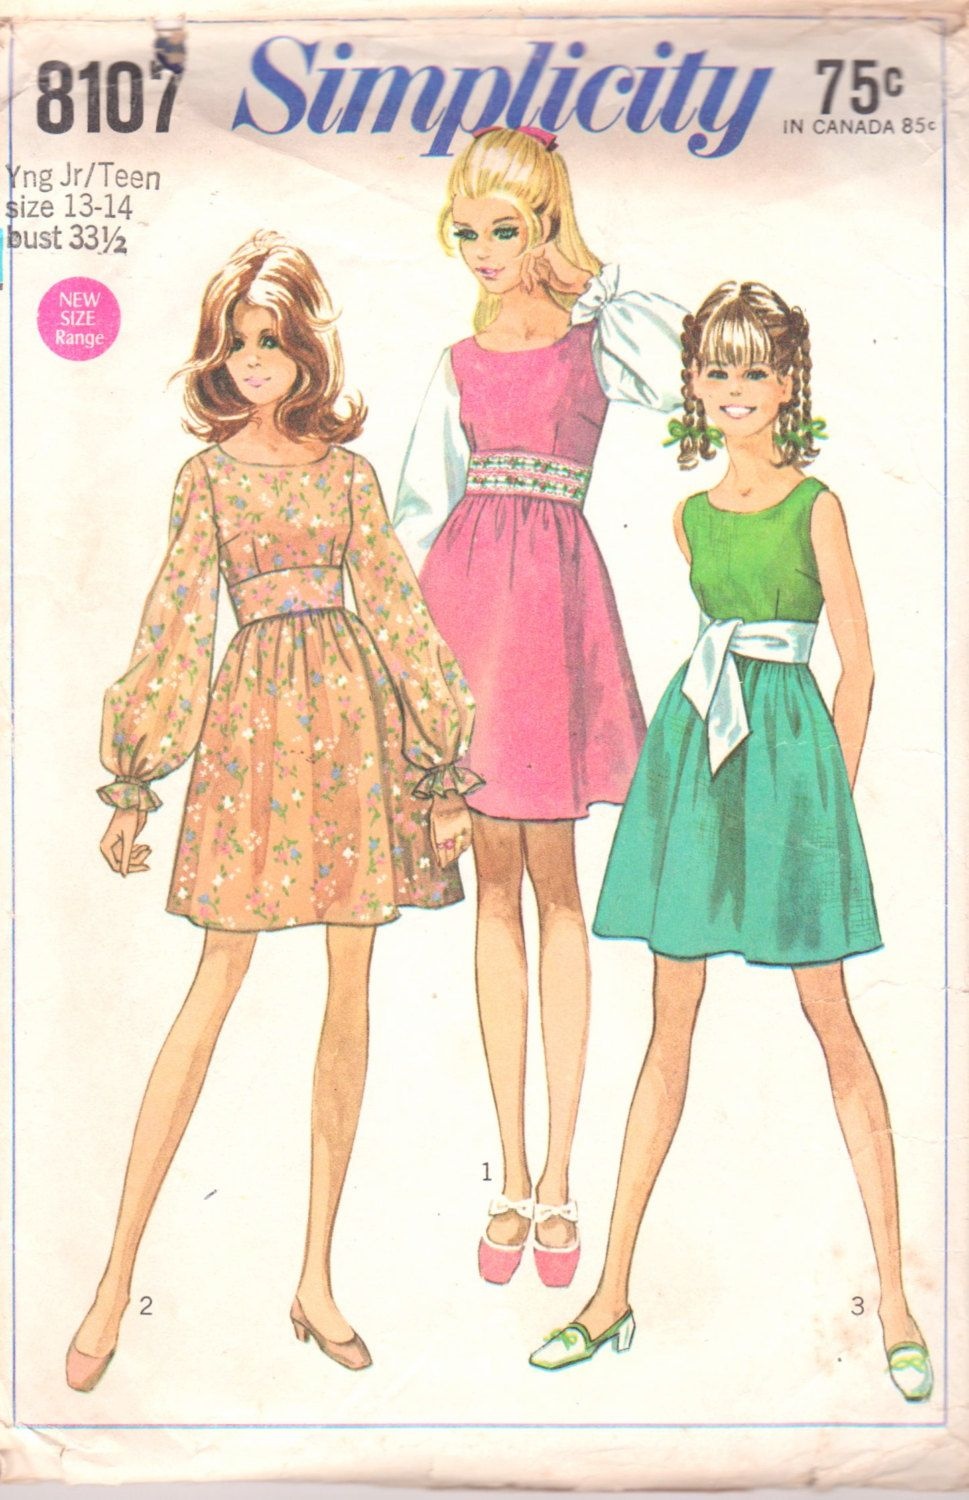 Simplicity 8107 1960s Young Jr Teen Midriff Mini Dress Pattern Scoop Neckline Womens Vintage Sewing Pattern Size 13 14  Bust 33 1/2. $8.00, via Etsy.